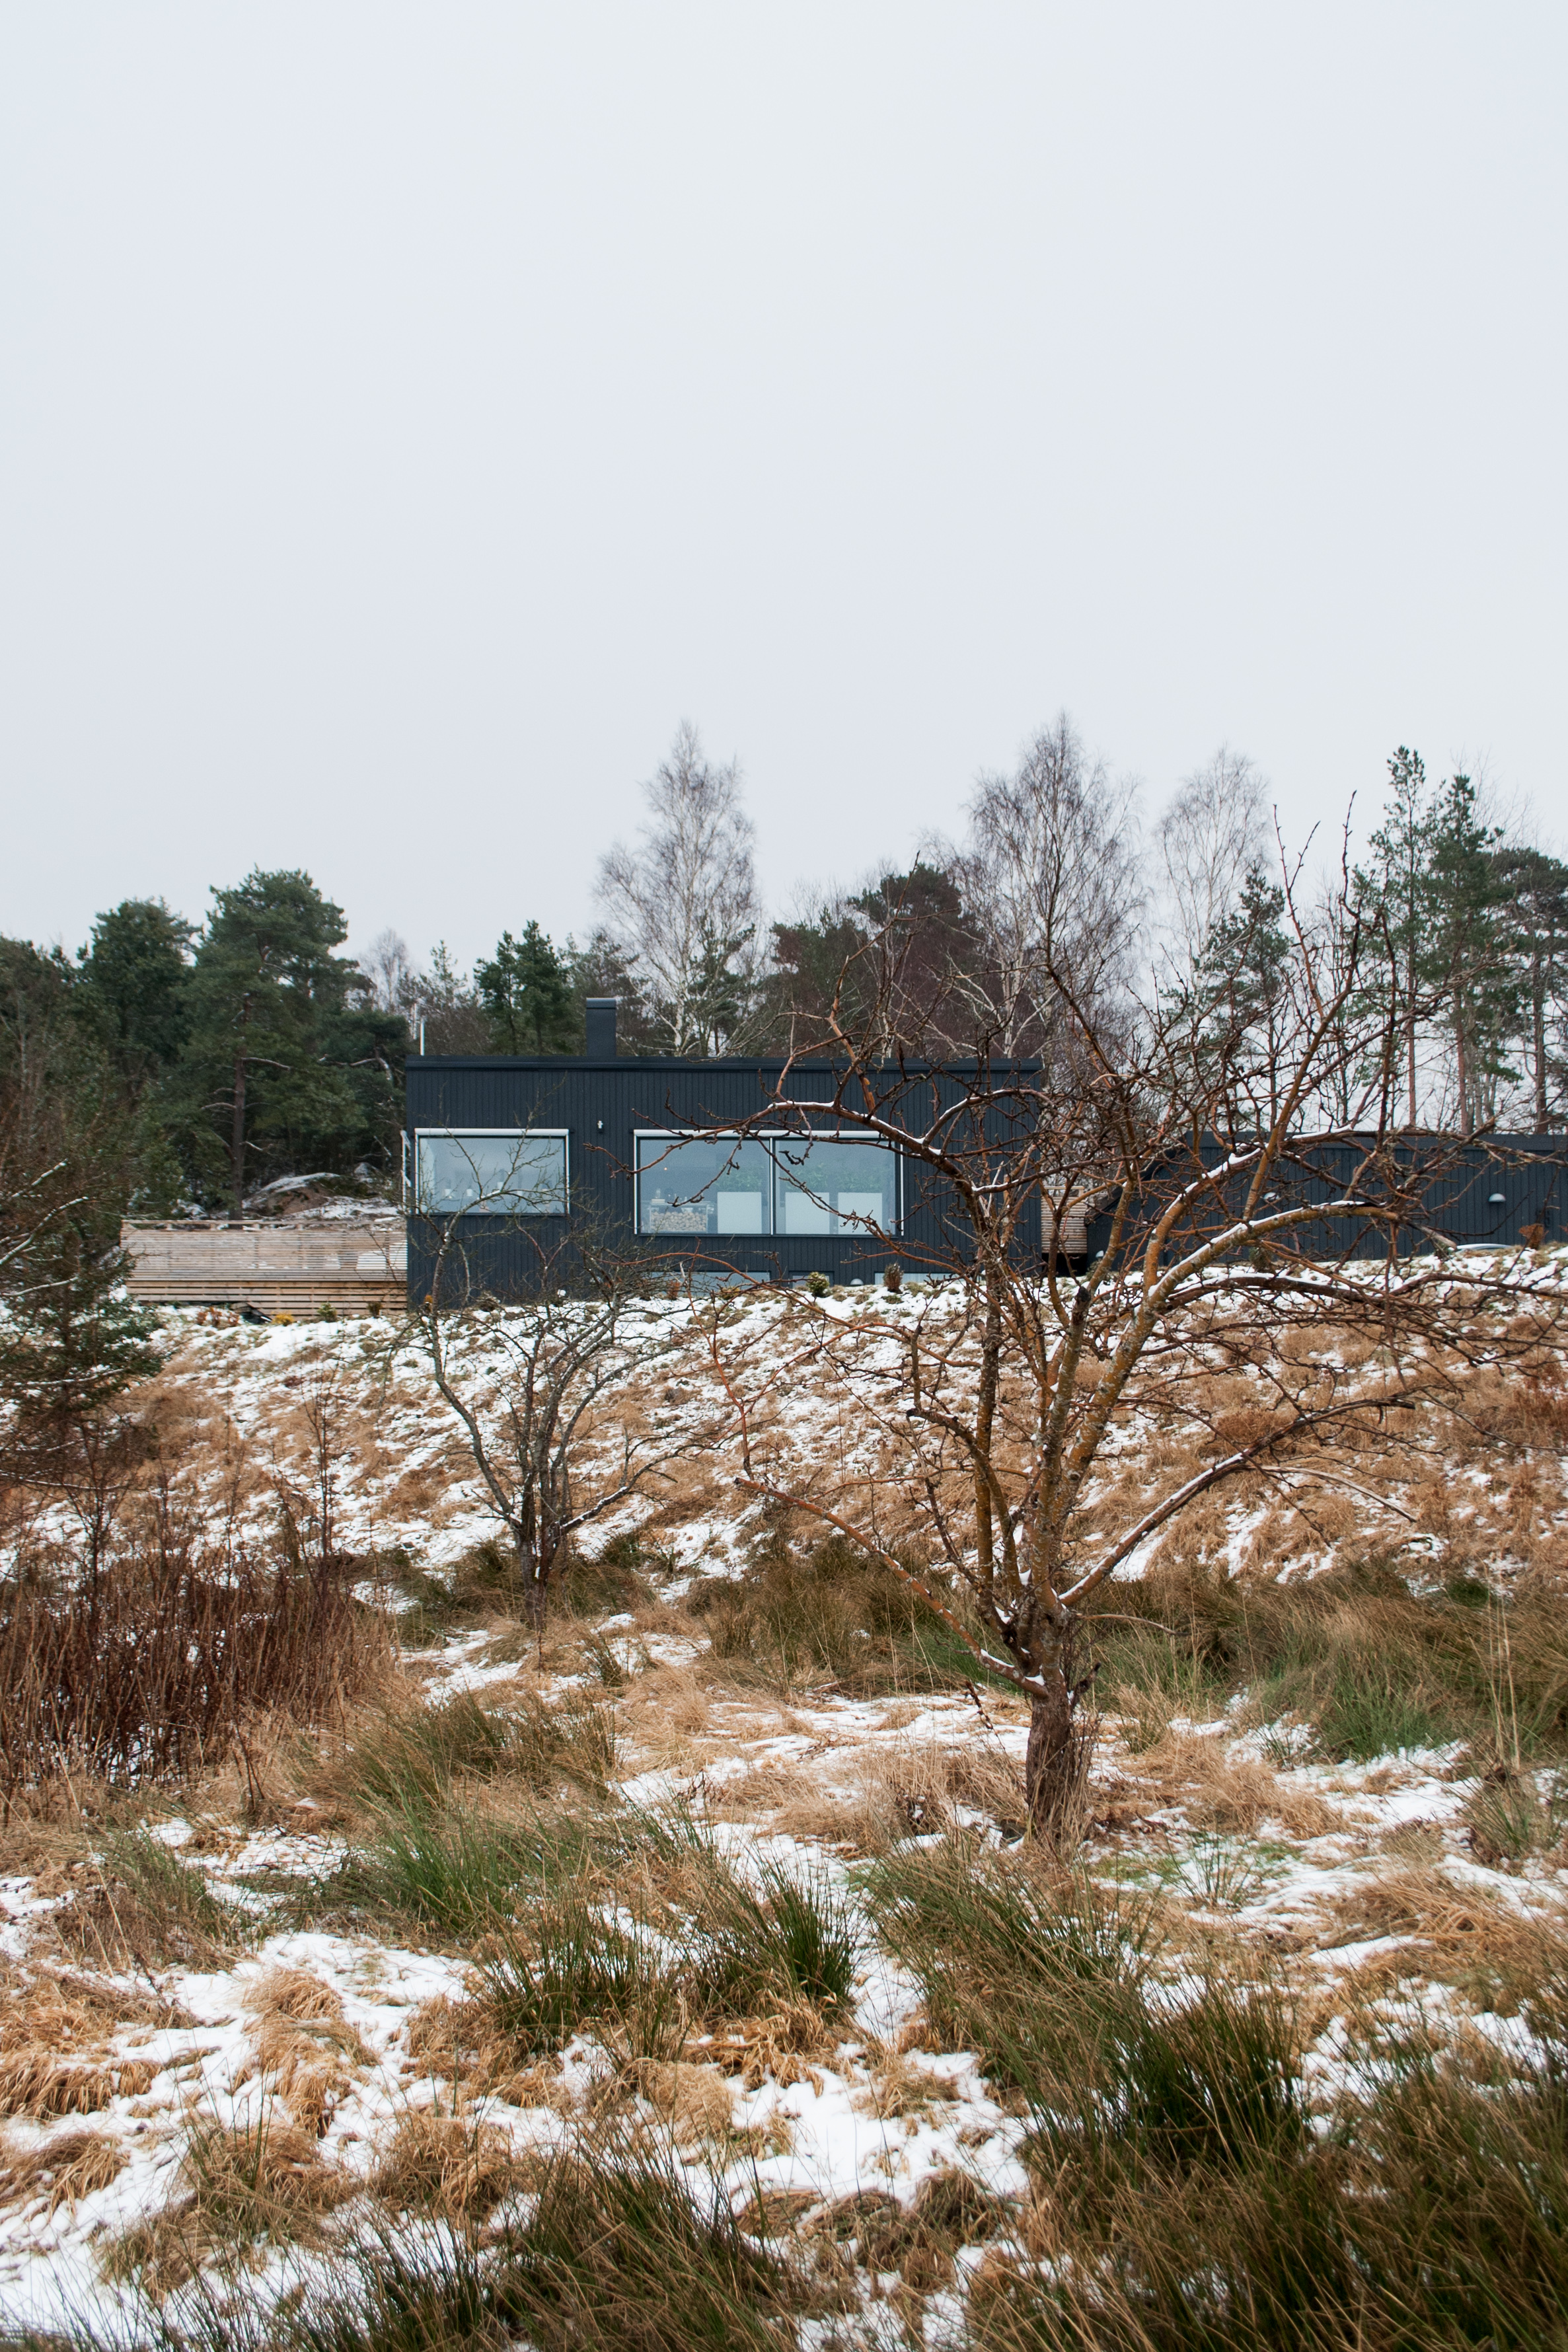 Situated on the outskirts of Gothenburg, this villa clings to a steep slope, incorporating the terrain within its layout. While at the front appearing large, clearly announcing itself from far away, the backside is low, private and cosy.